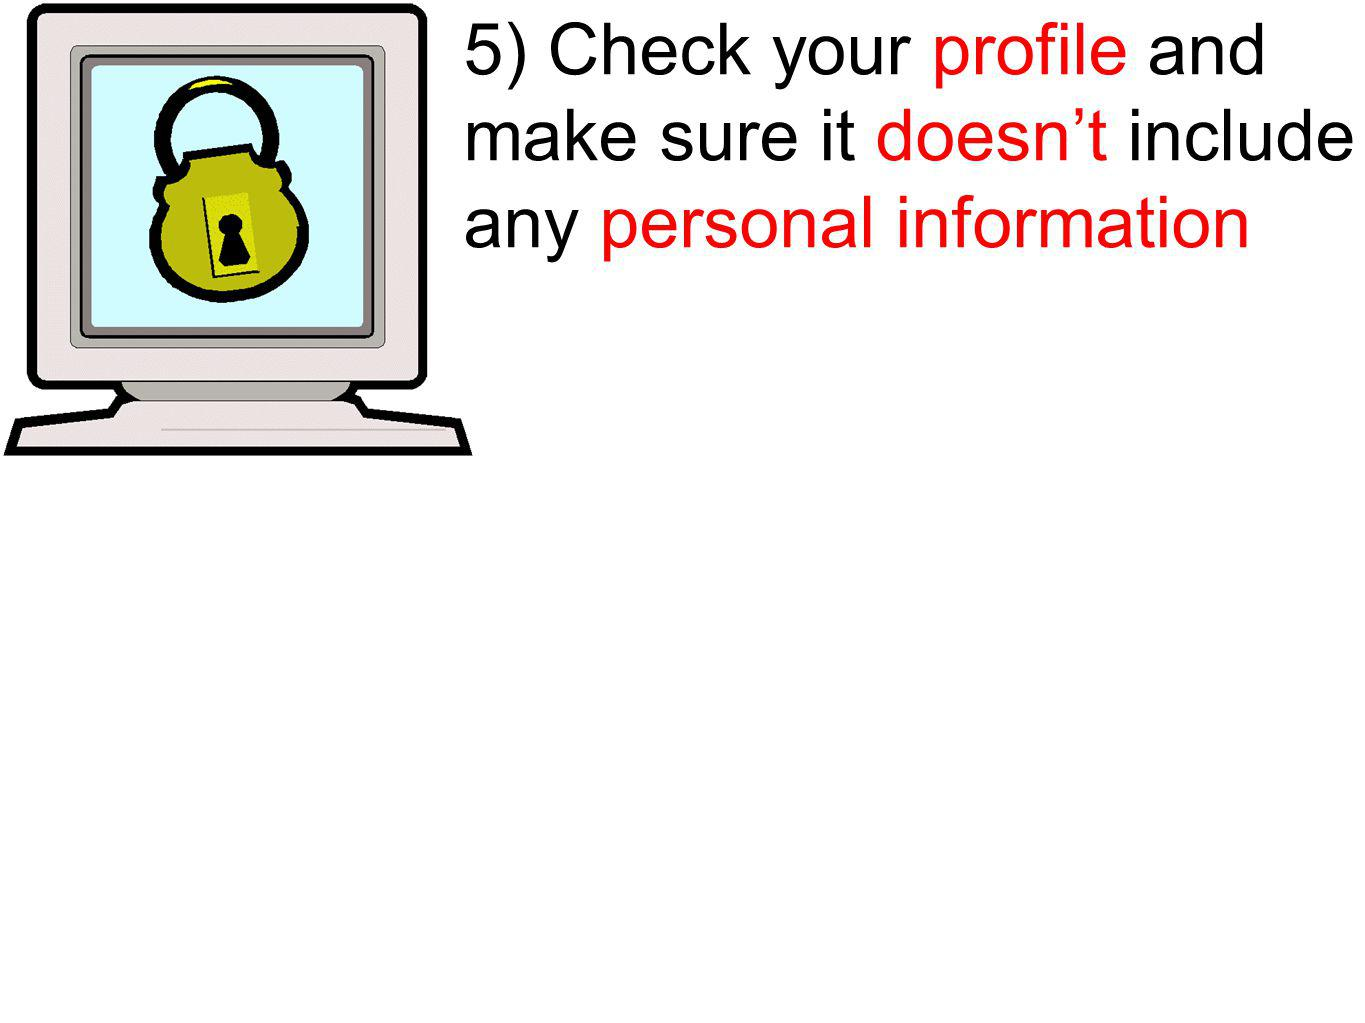 5) Check your profile and make sure it doesnt include any personal information